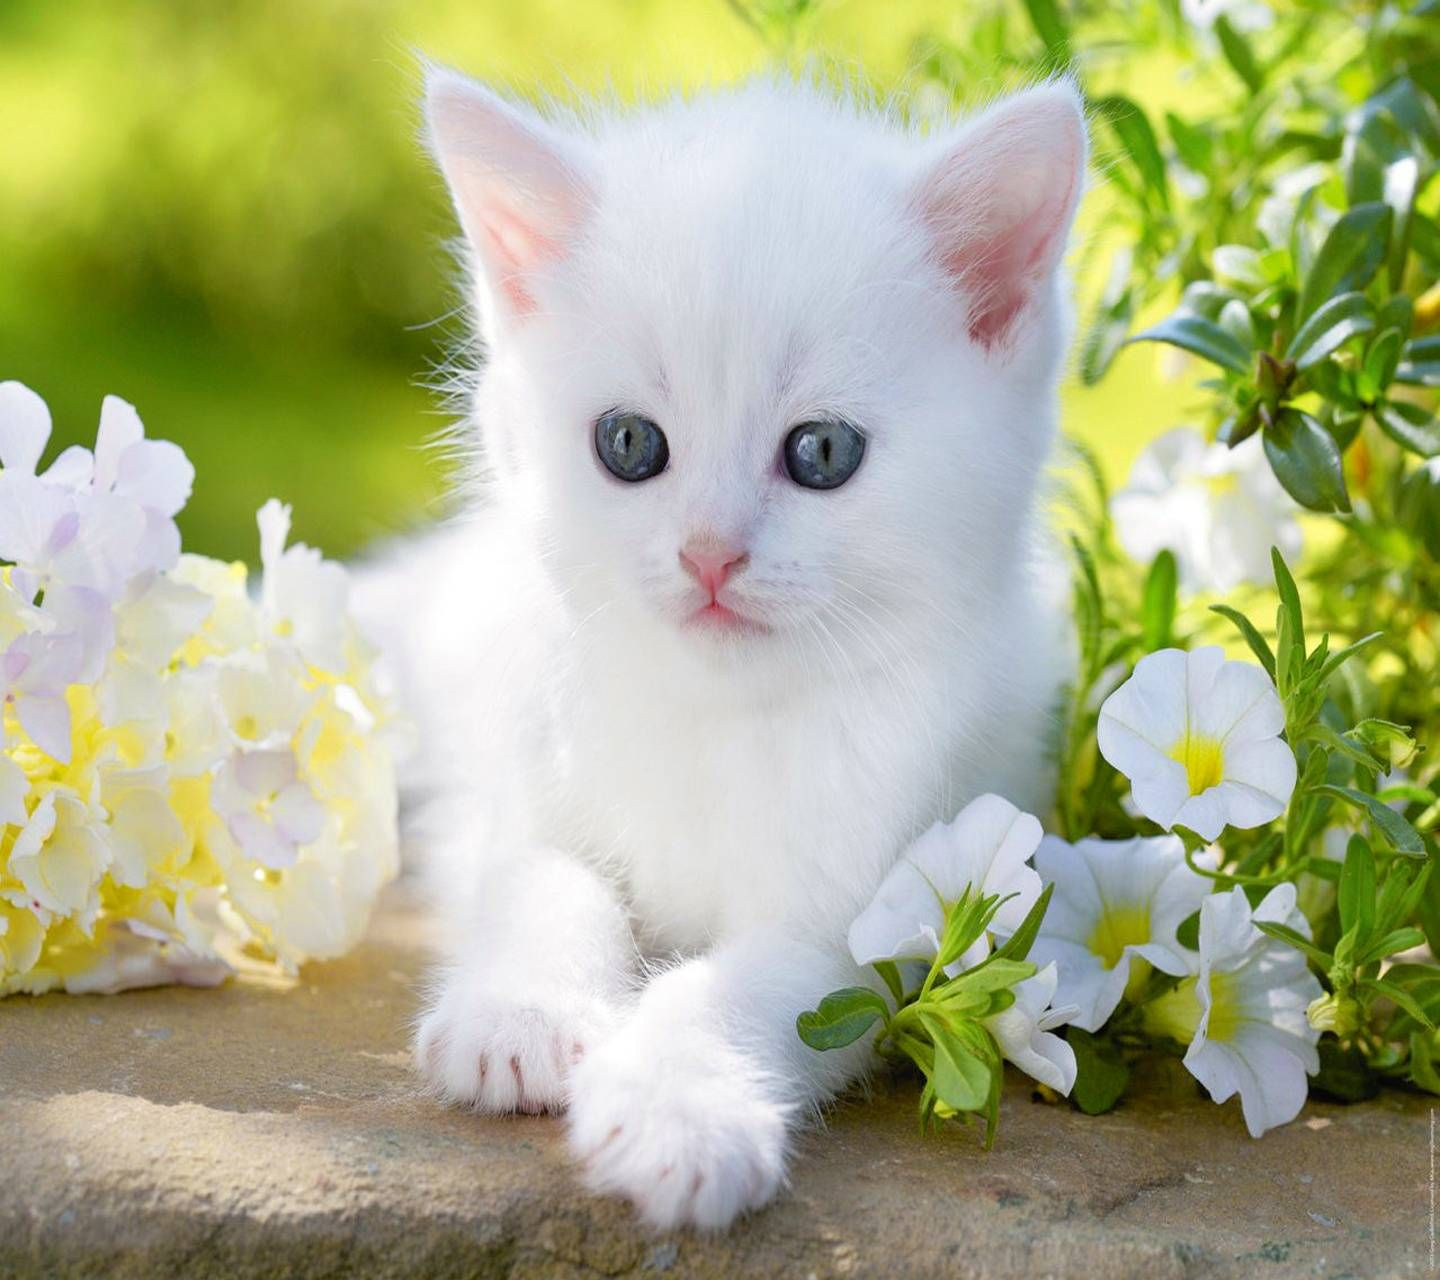 Download Sweet Cat Wallpaper By Dondavis4178876 Cf Free On Zedge Now Browse Millions Of Popular Cat Wallpapers An Baby Cats Cute Baby Cats Kittens Cutest